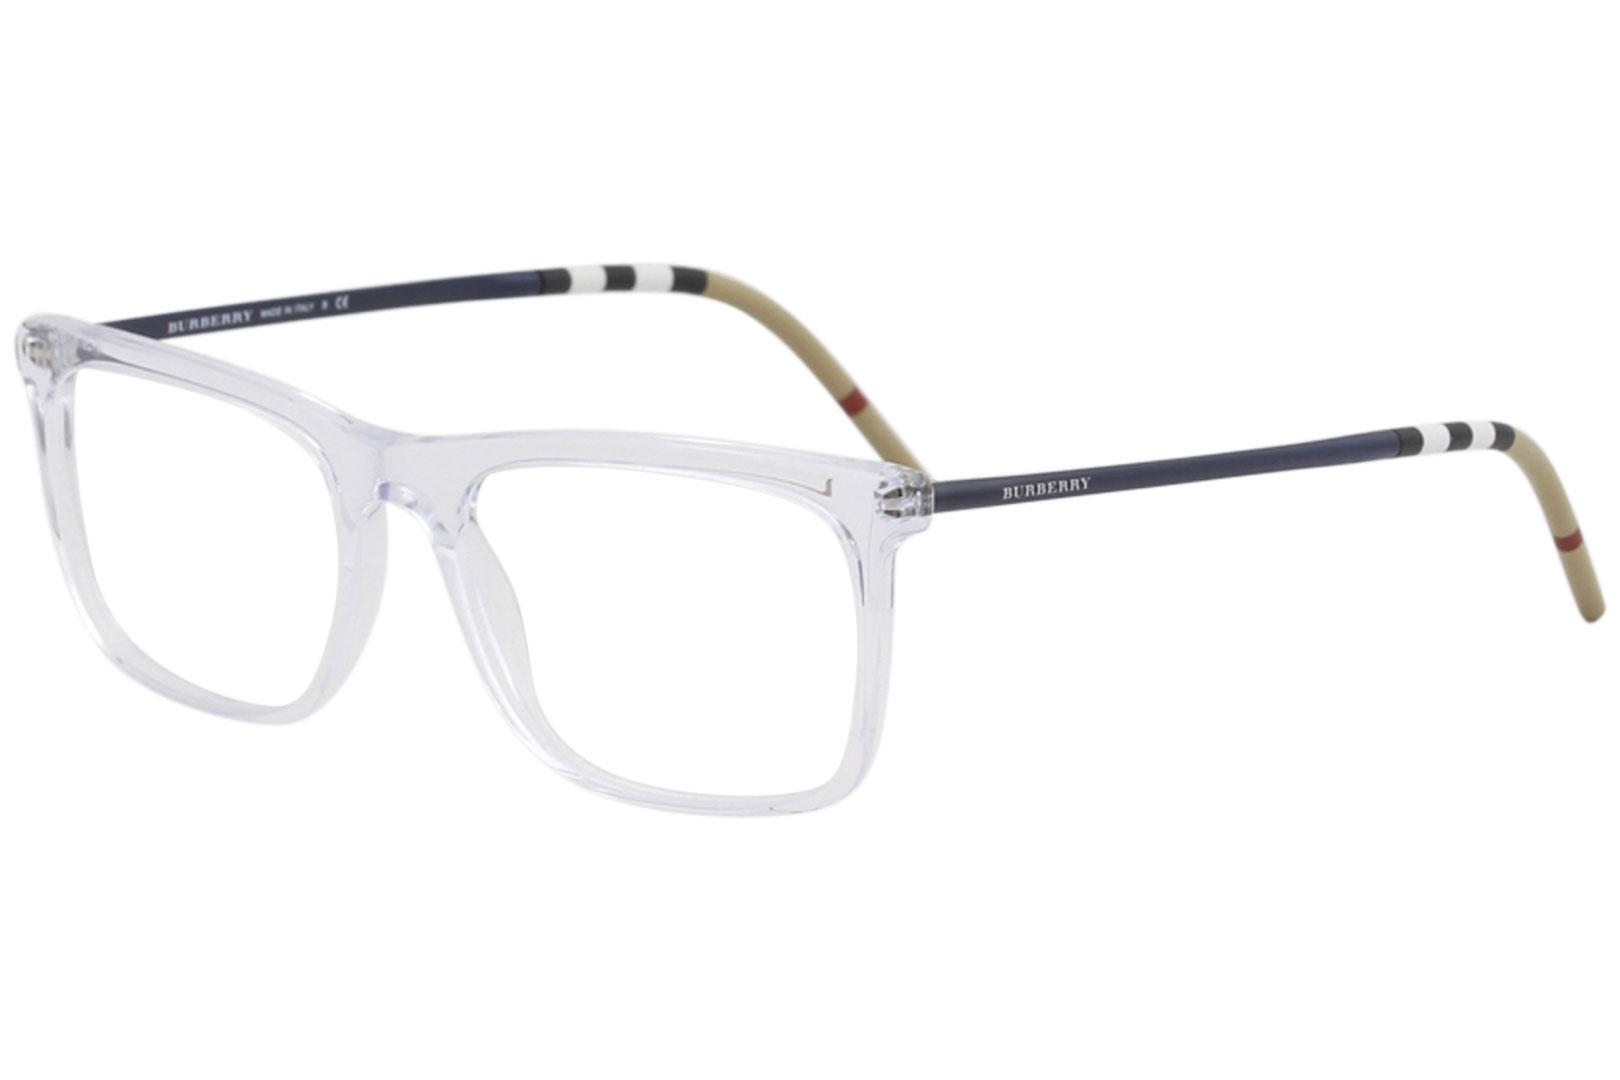 a8627731f7fb Burberry Men s Eyeglasses BE2274 BE 2274 Full-Rim Optical Frame by Burberry